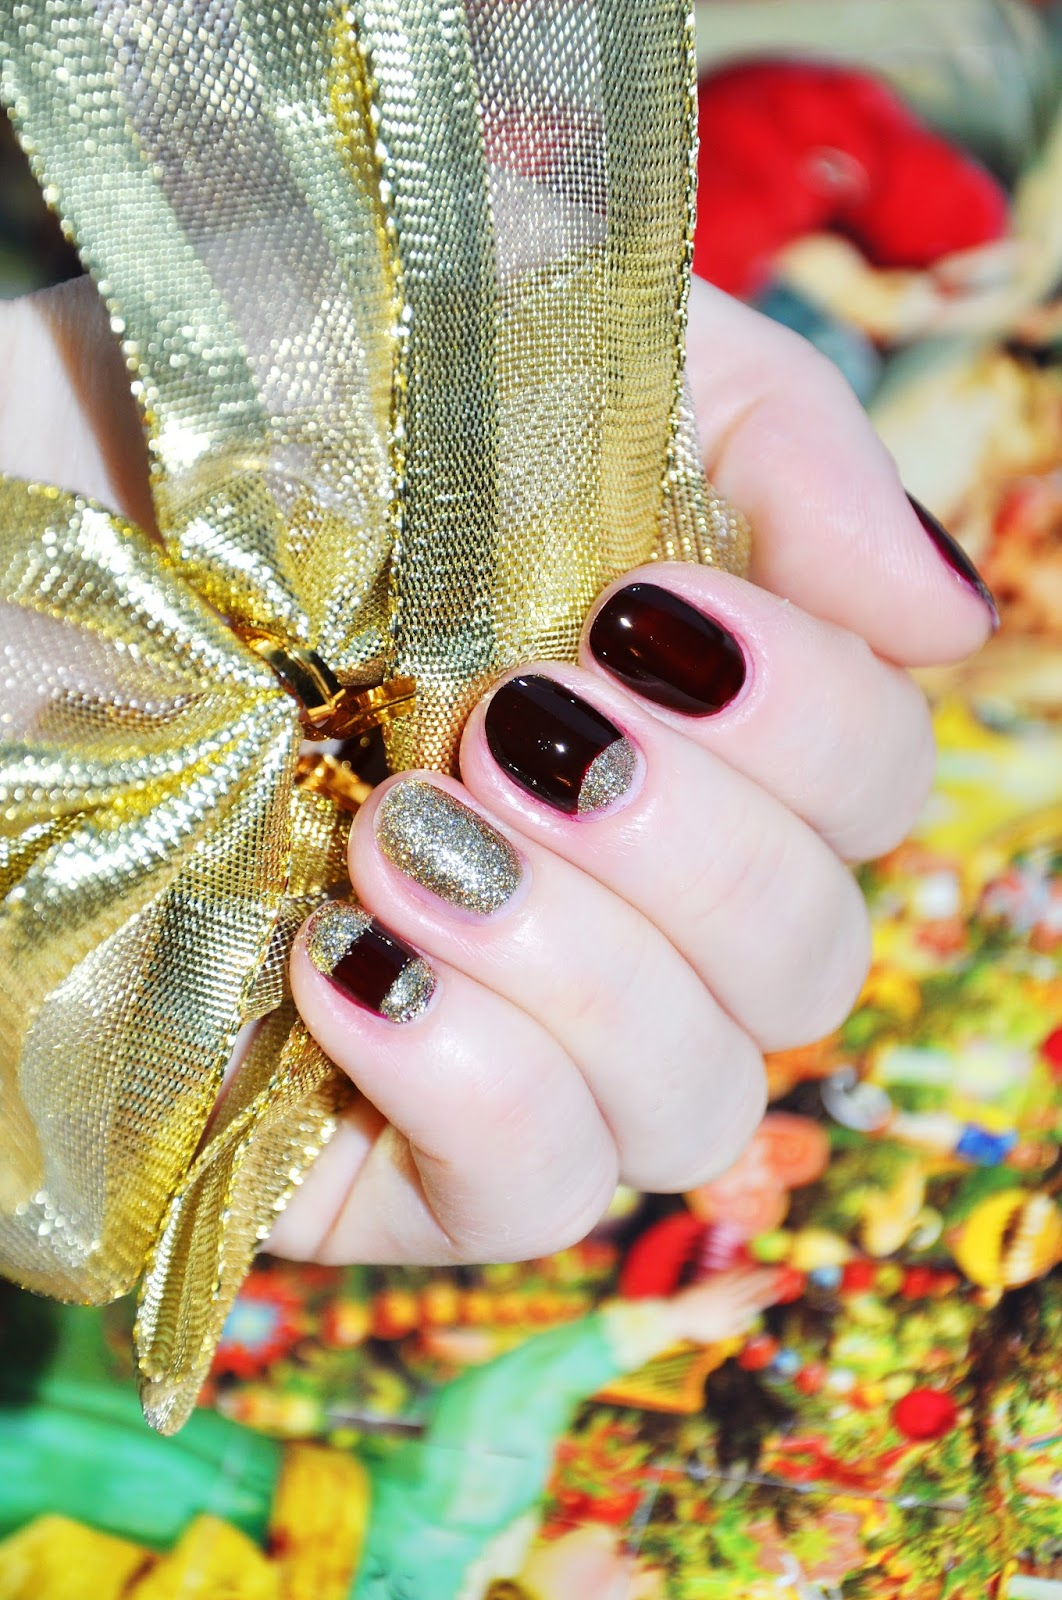 OPI Visions of Love All Sparkly and Gold